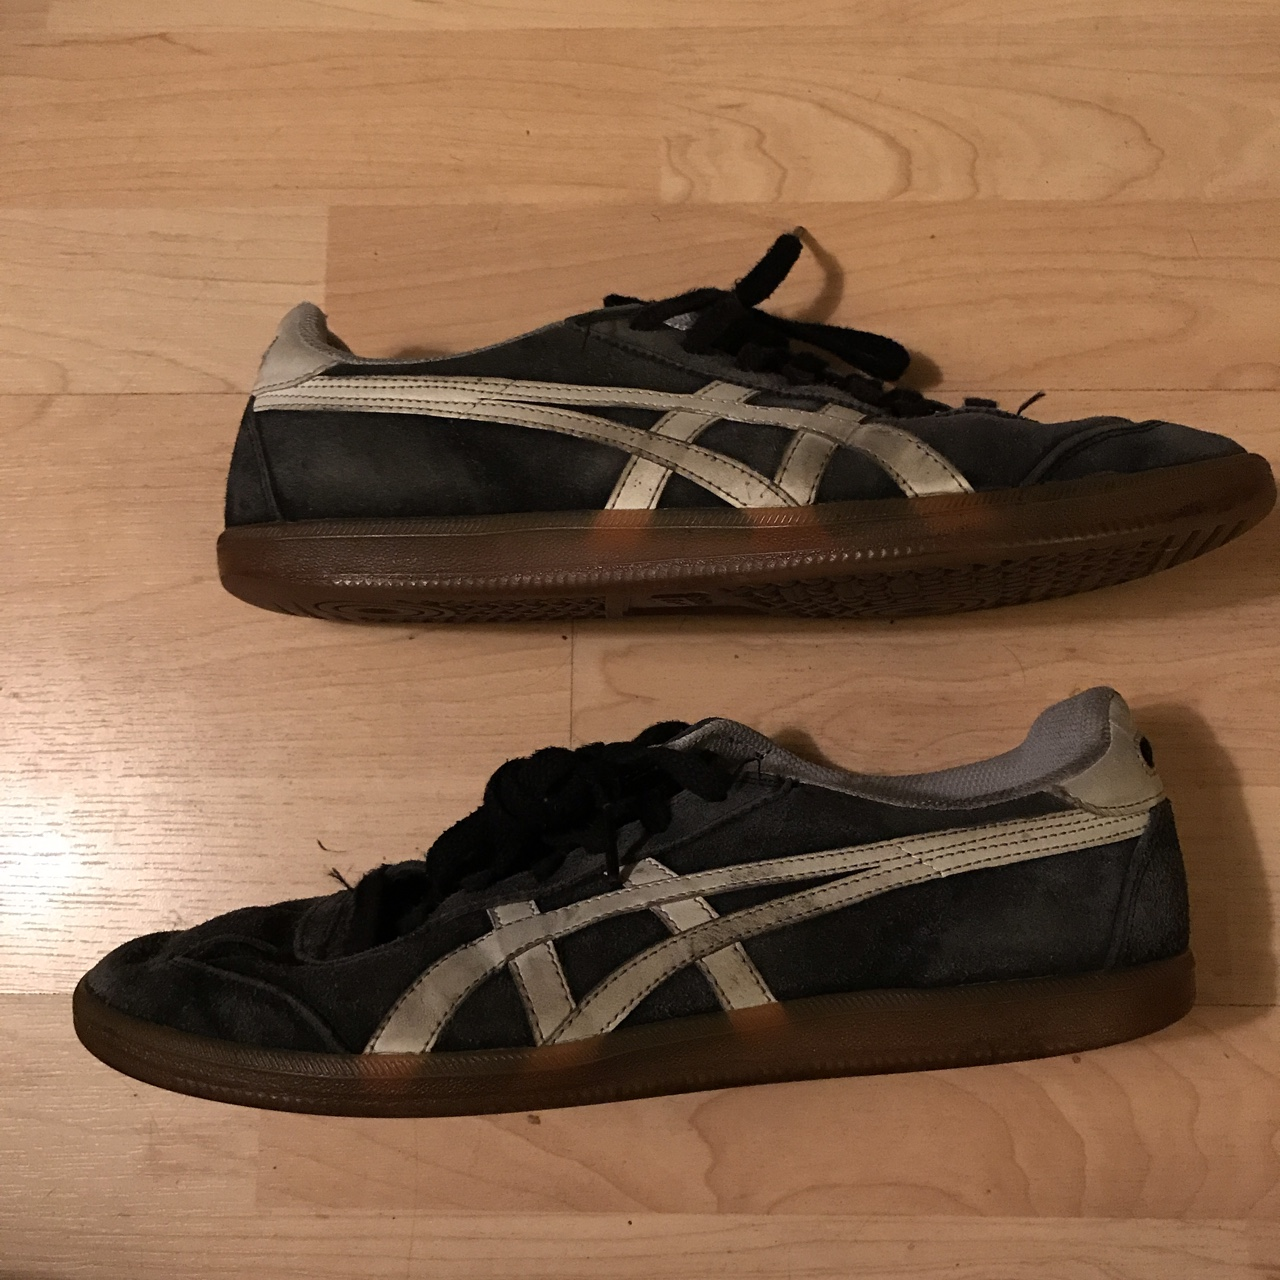 Onitsuka tiger stripes shoes. In good